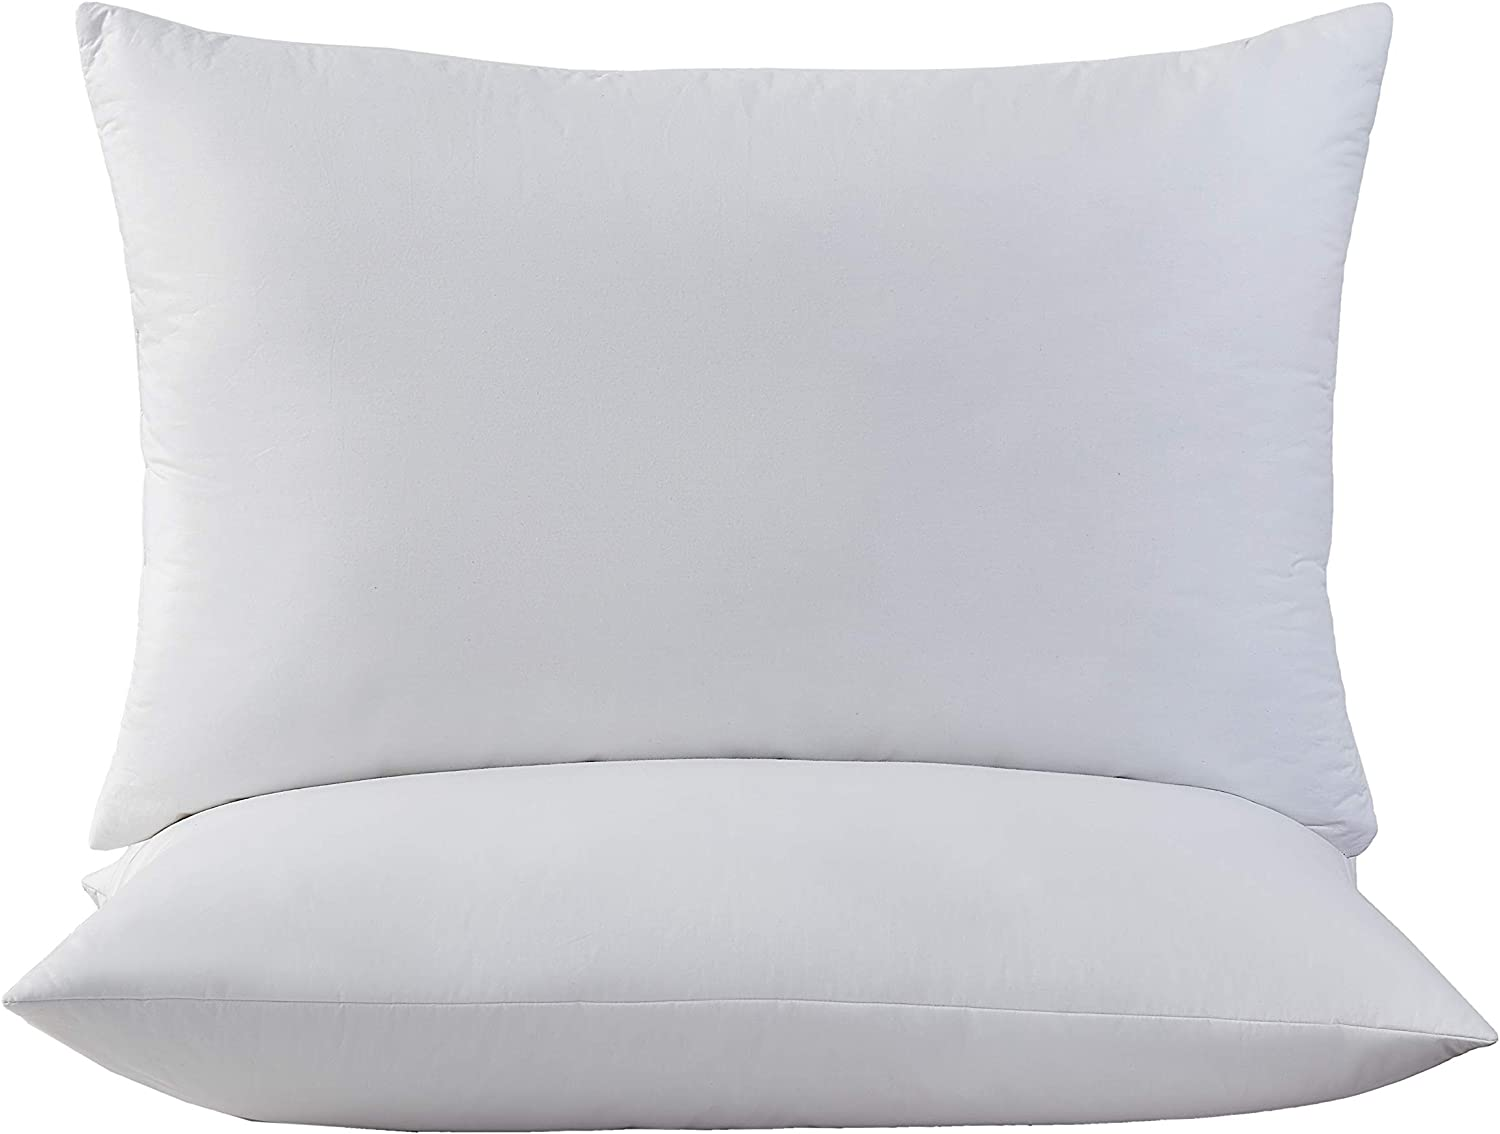 SHEONE Goose Down Max 48% OFF Feather Pillows Sleep Natural Bed for safety